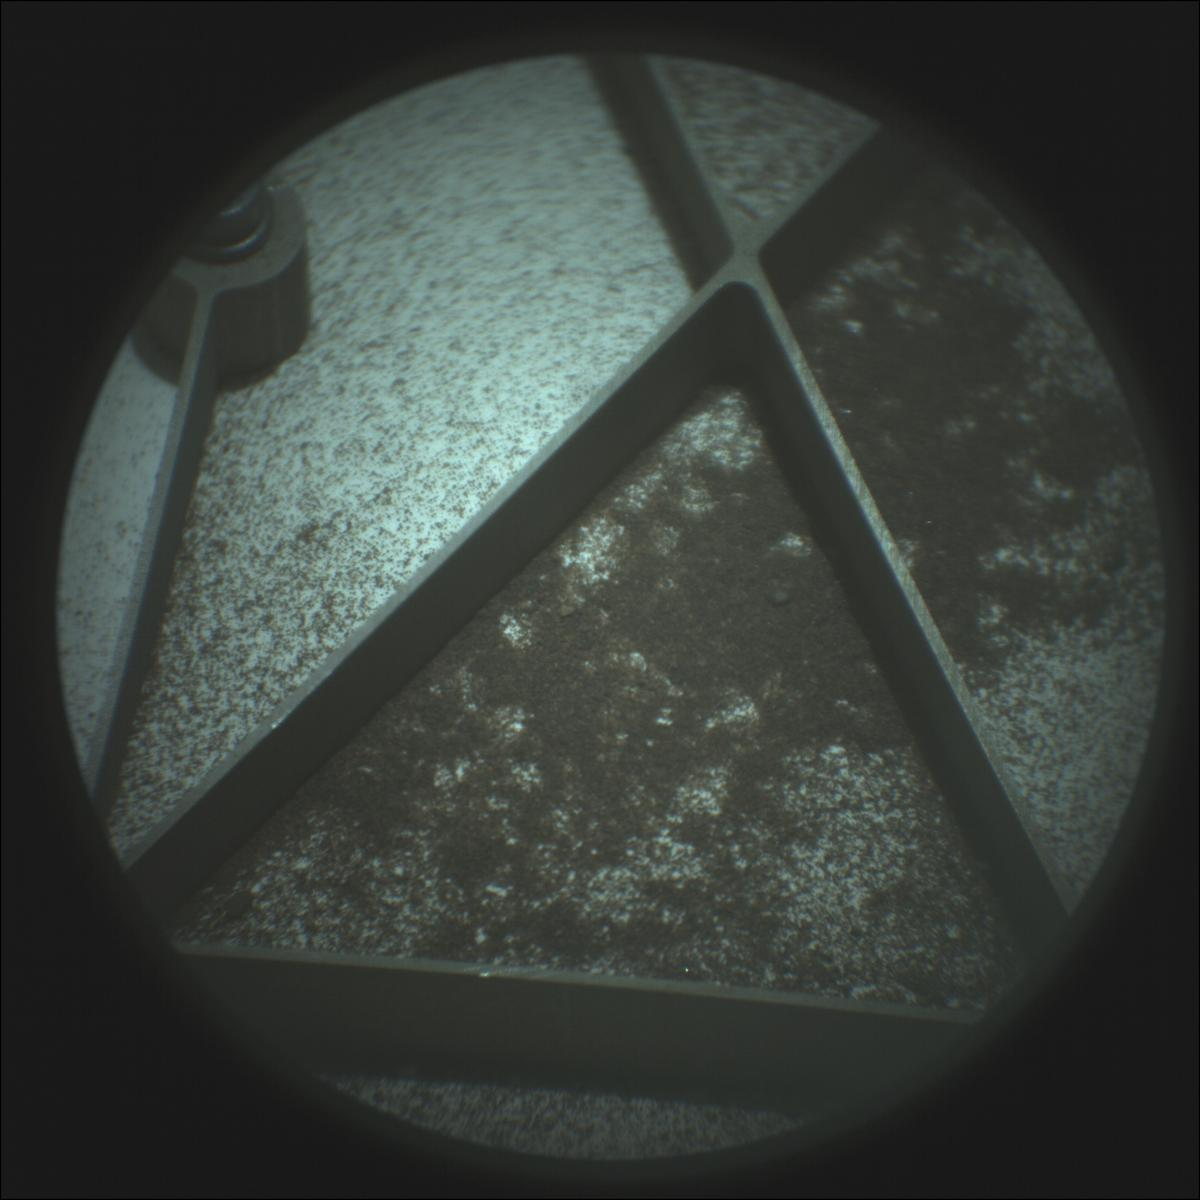 This image was taken by SUPERCAM_RMI onboard NASA's Mars rover Perseverance on Sol 30